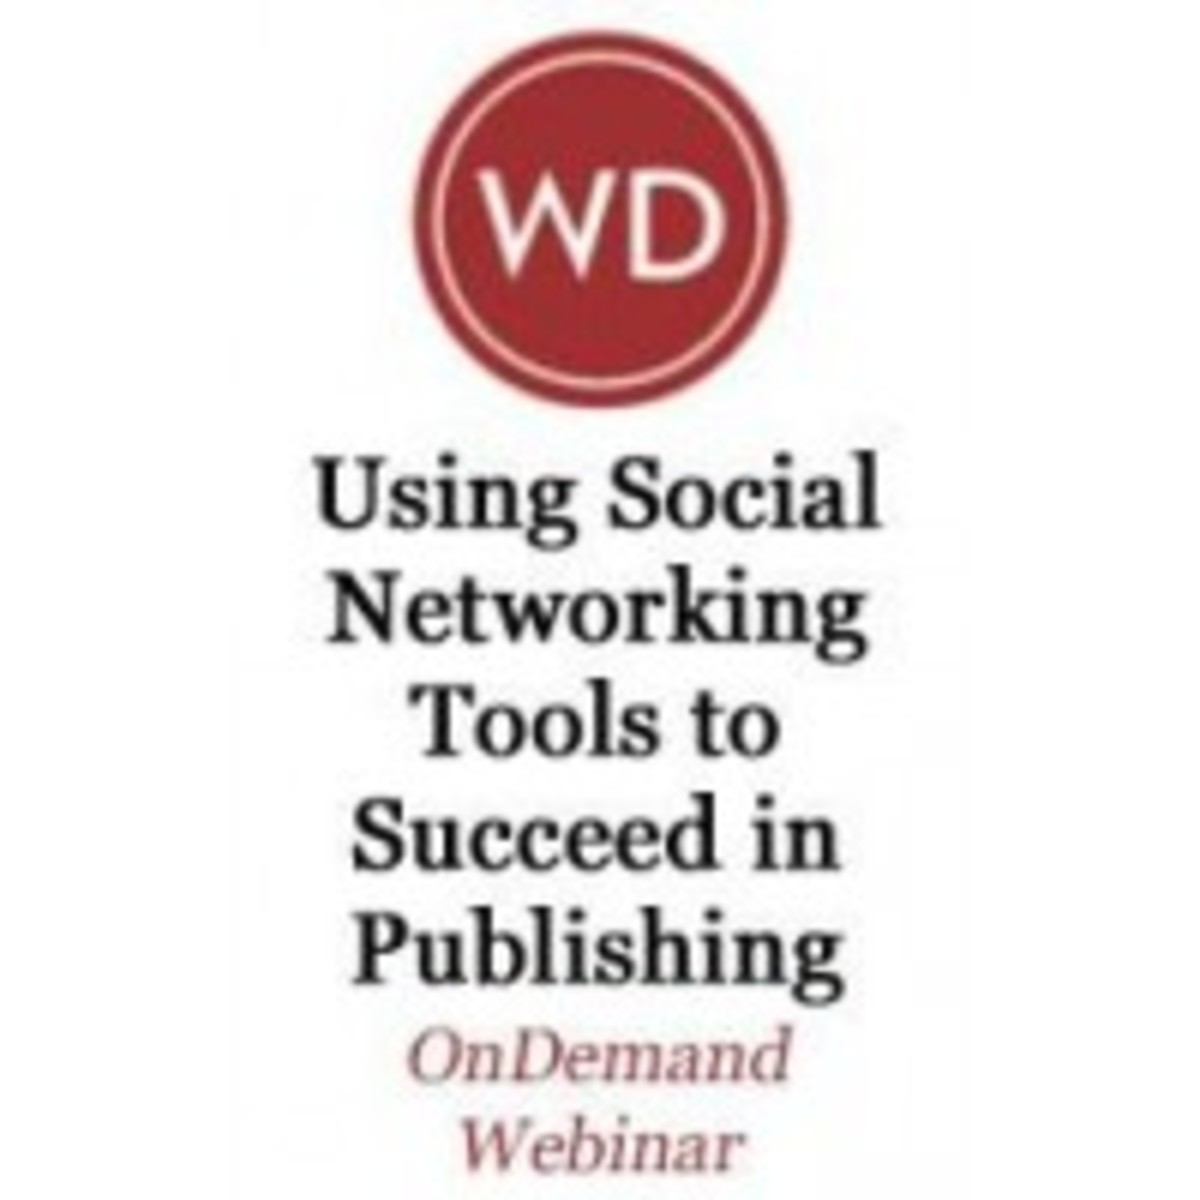 using_social_networking_tools_to_succeed_in_publishing